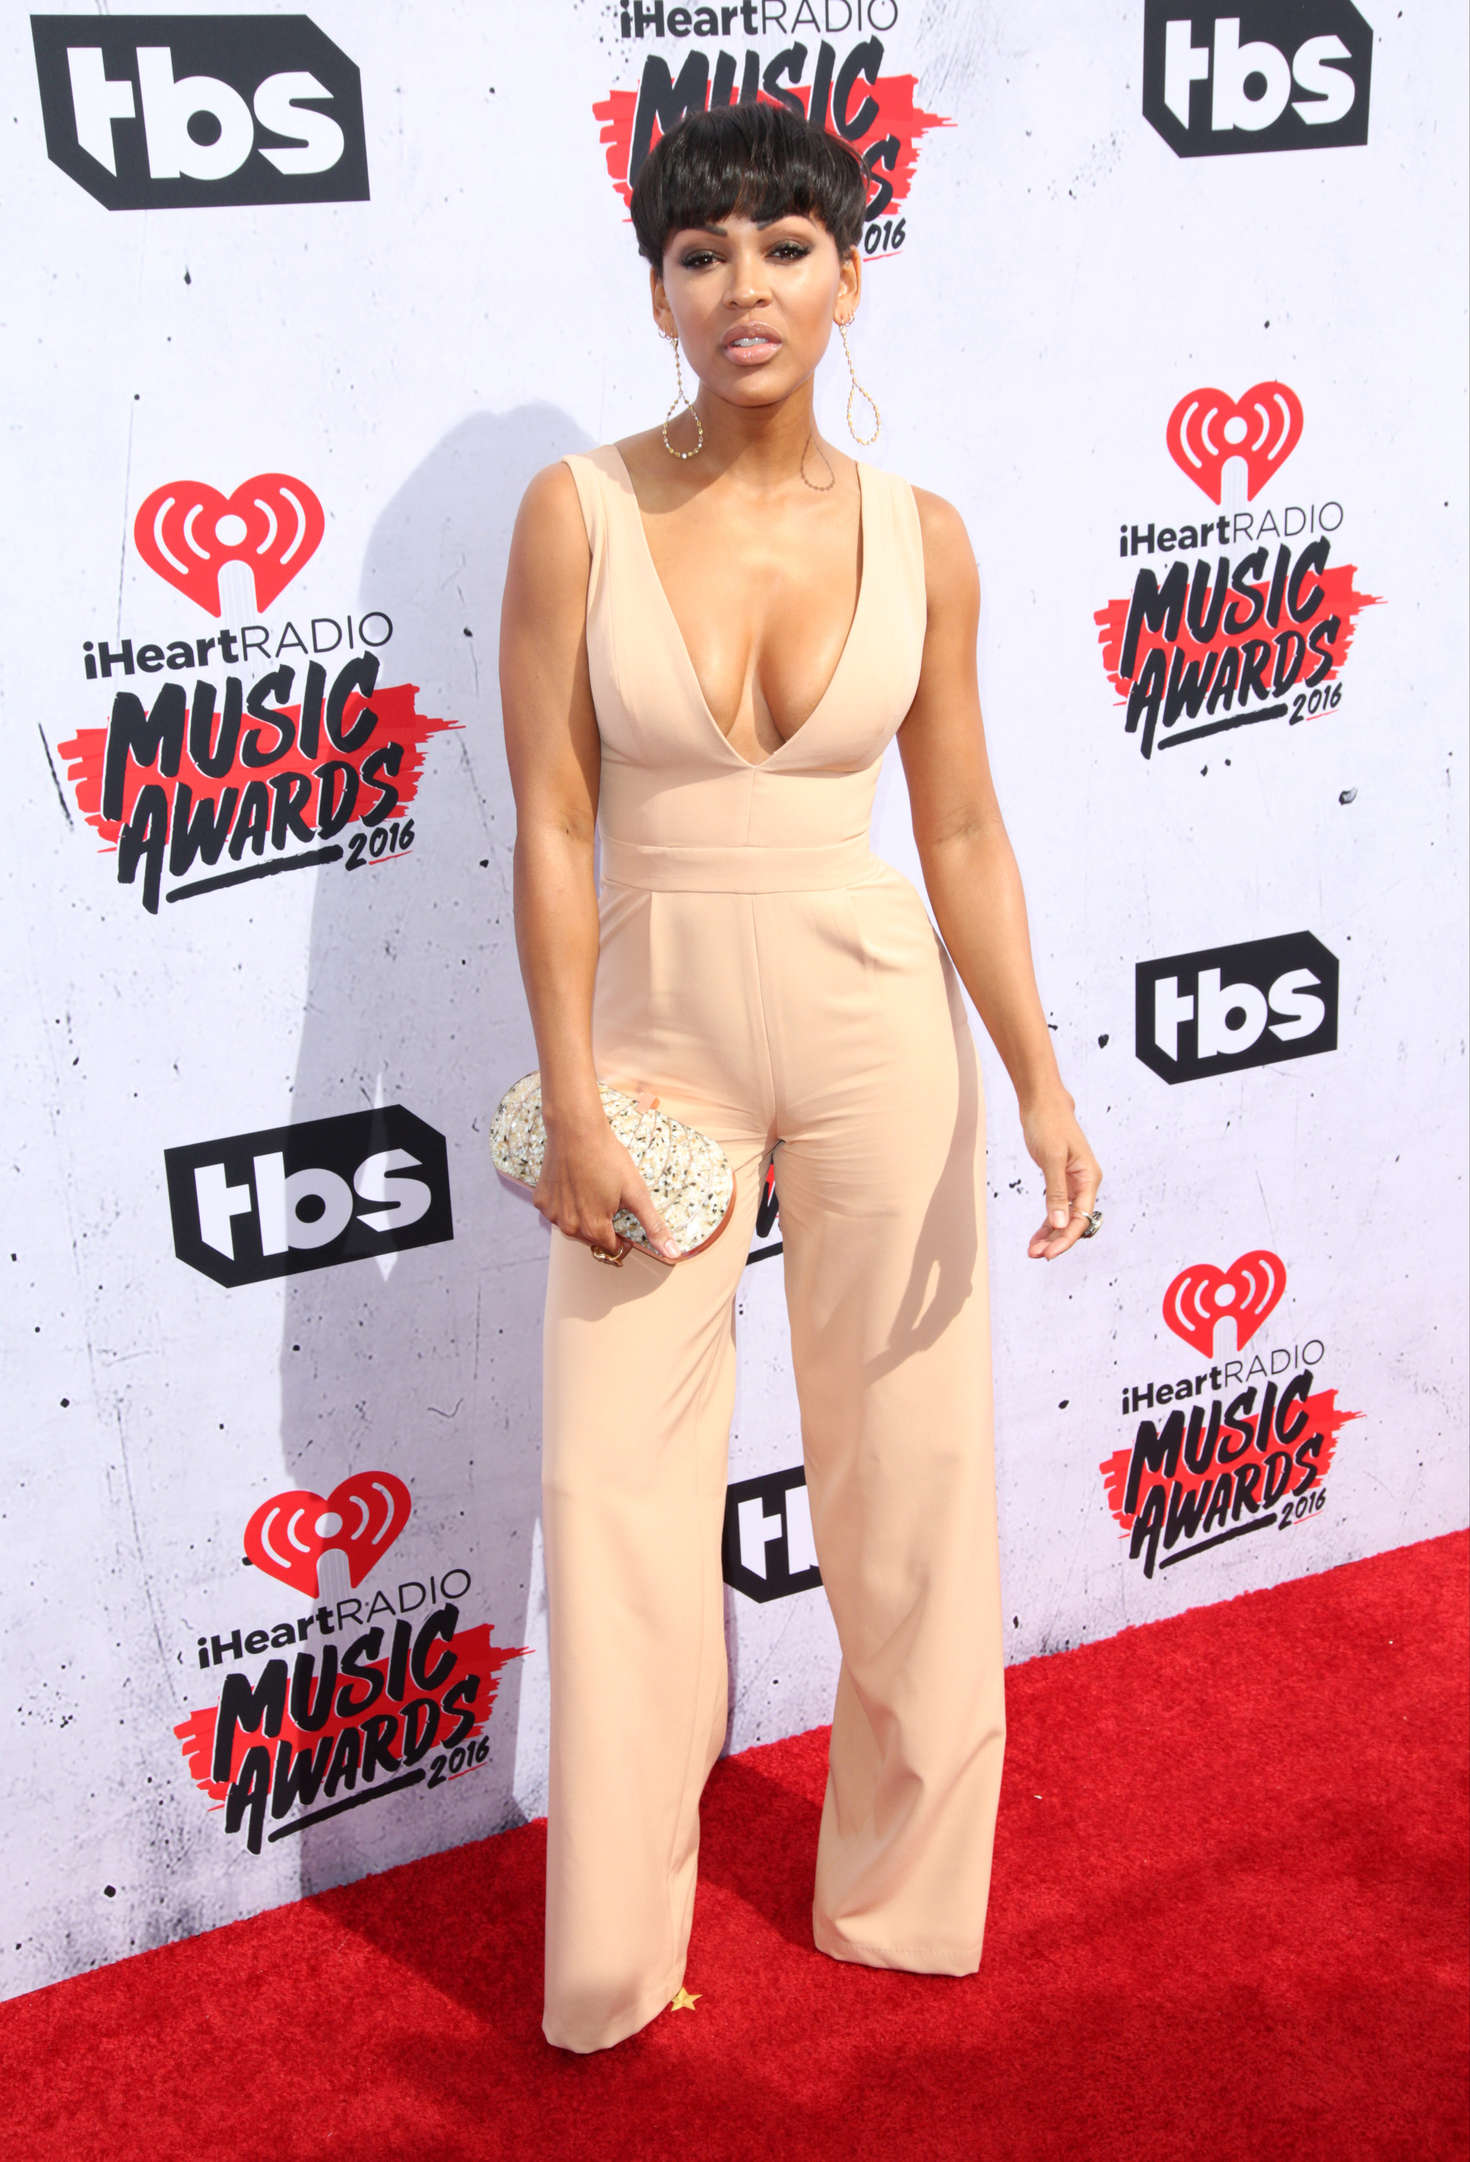 Meagan Good iHeartRadio Music Awards in Los Angeles